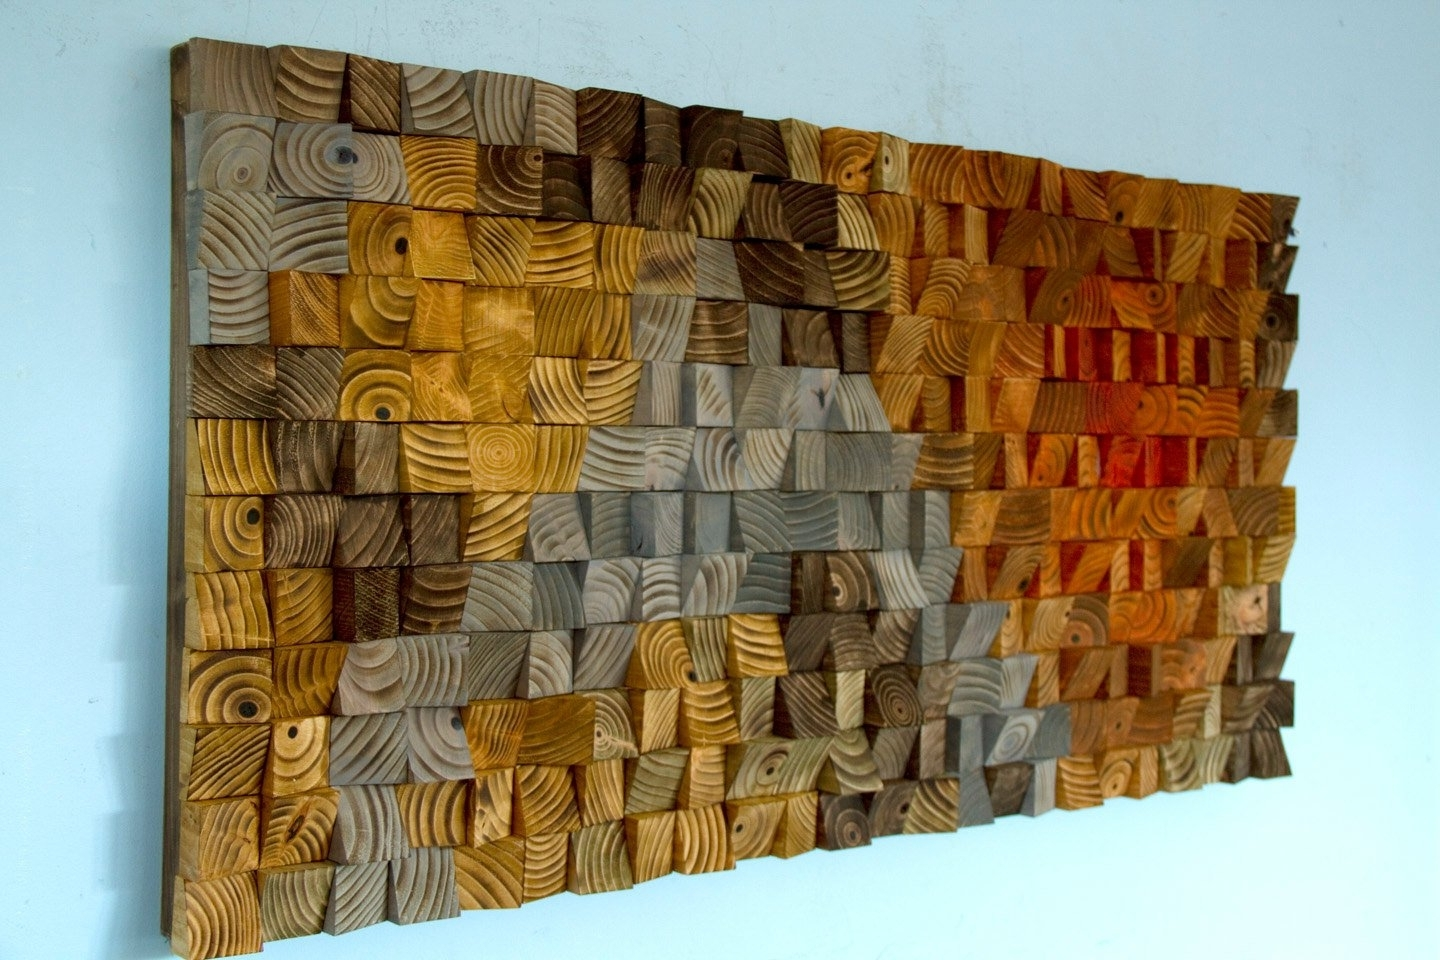 2018 Rustic Wood Wall Art, Wood Wall Sculpture, Abstract Wood Art Throughout Wood Art Wall (View 3 of 20)